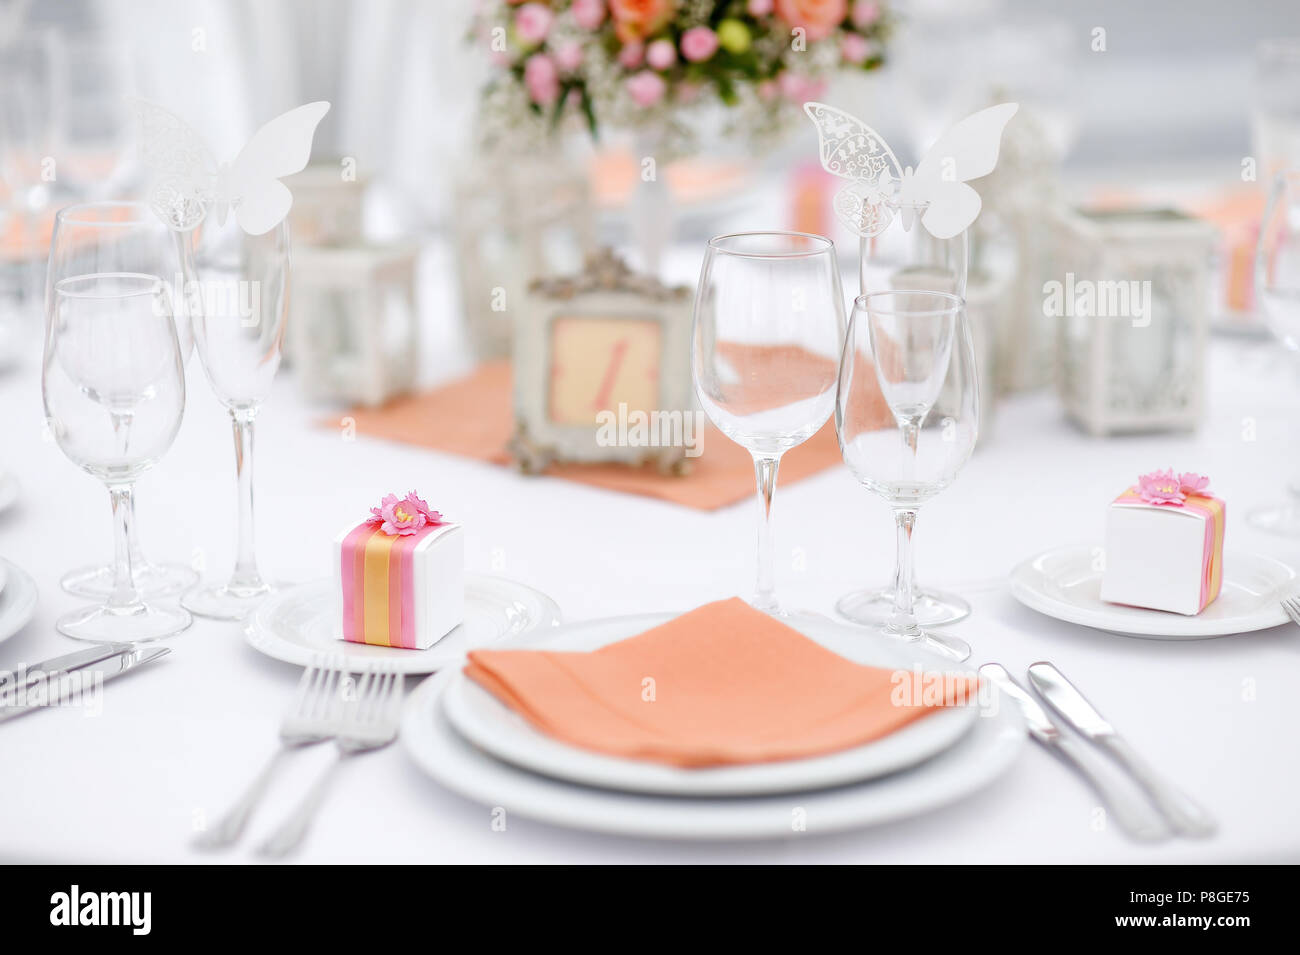 Table Set For An Event Party Or Wedding Reception Spring Theme